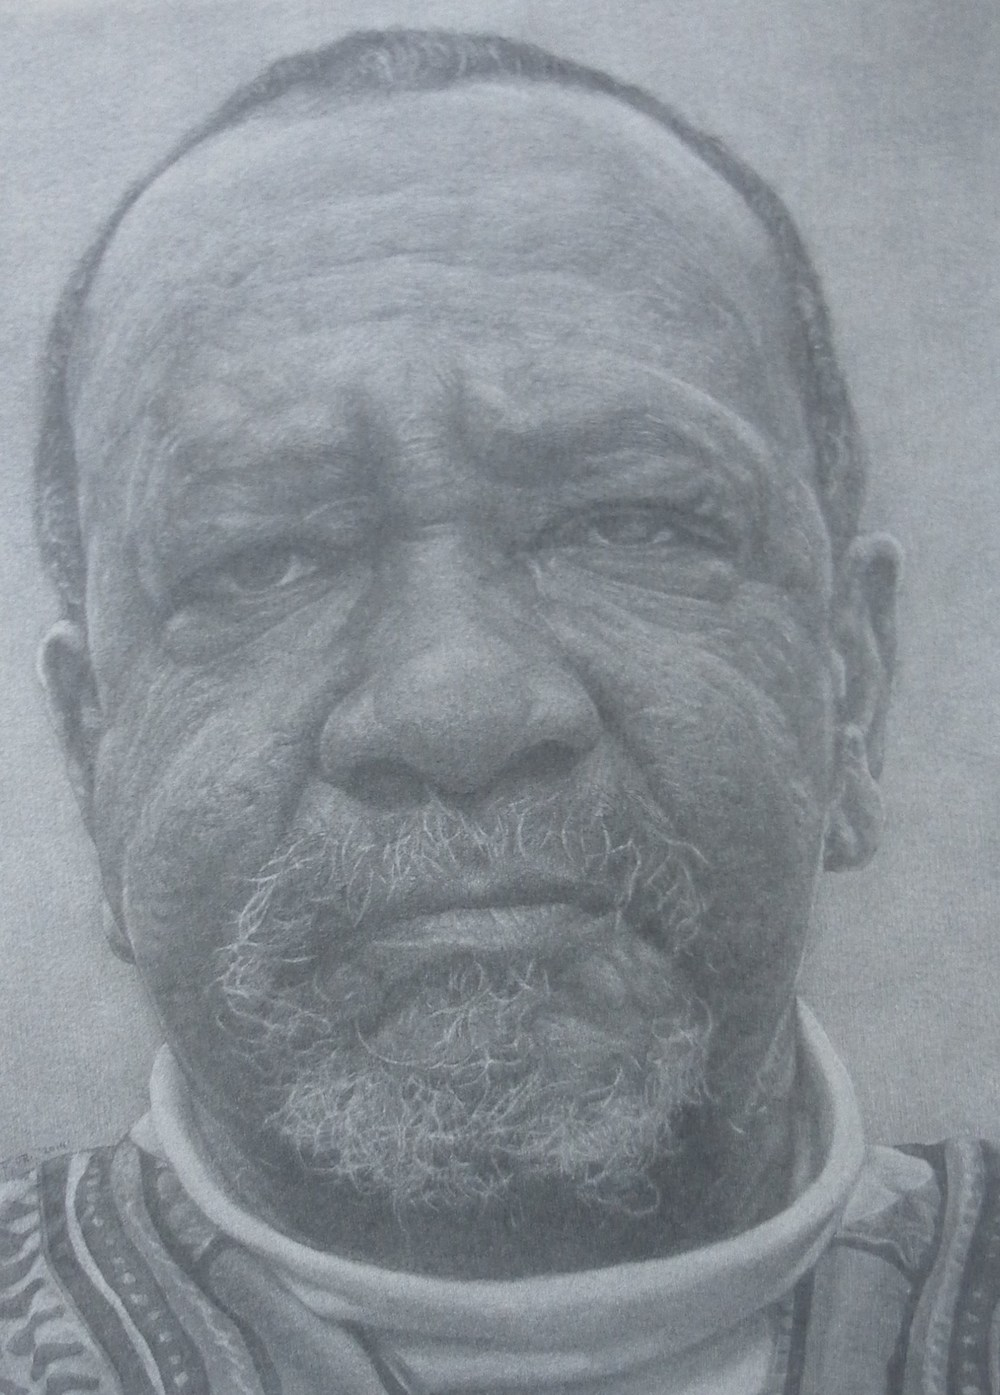 """Cecil (Drawing from the Cecil mural)""    2014 Pencil on wove paper   14 ¼ x 10 ¾ inches   © Richard Wyatt Jr."